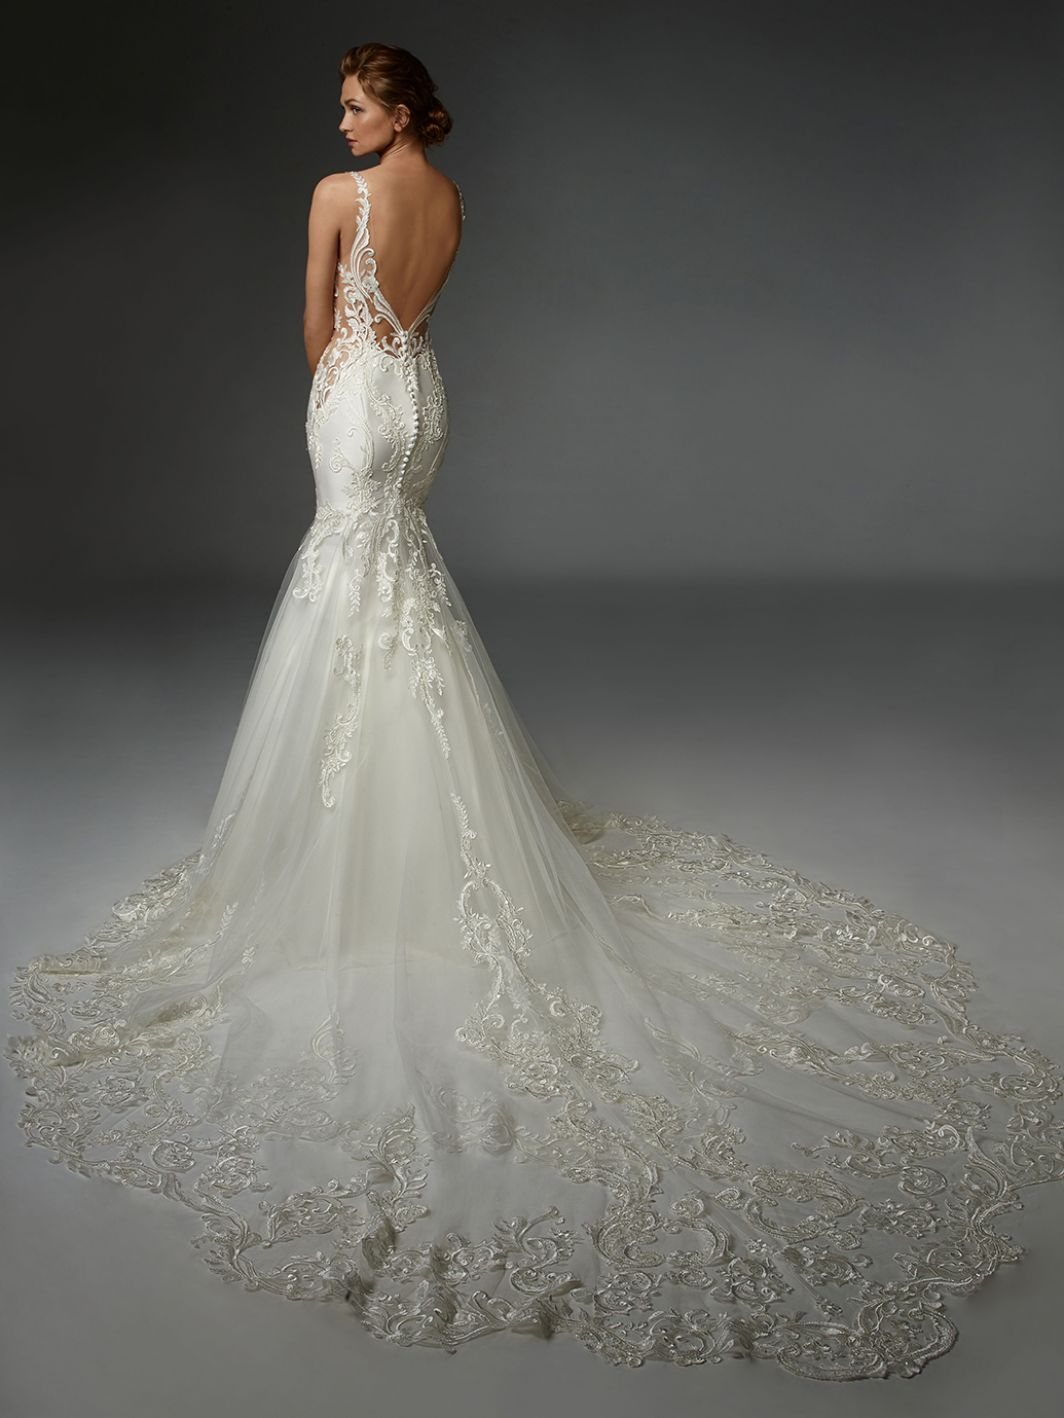 Henriette - New, Gown, Élysée by Enzoani - Eternal Bridal